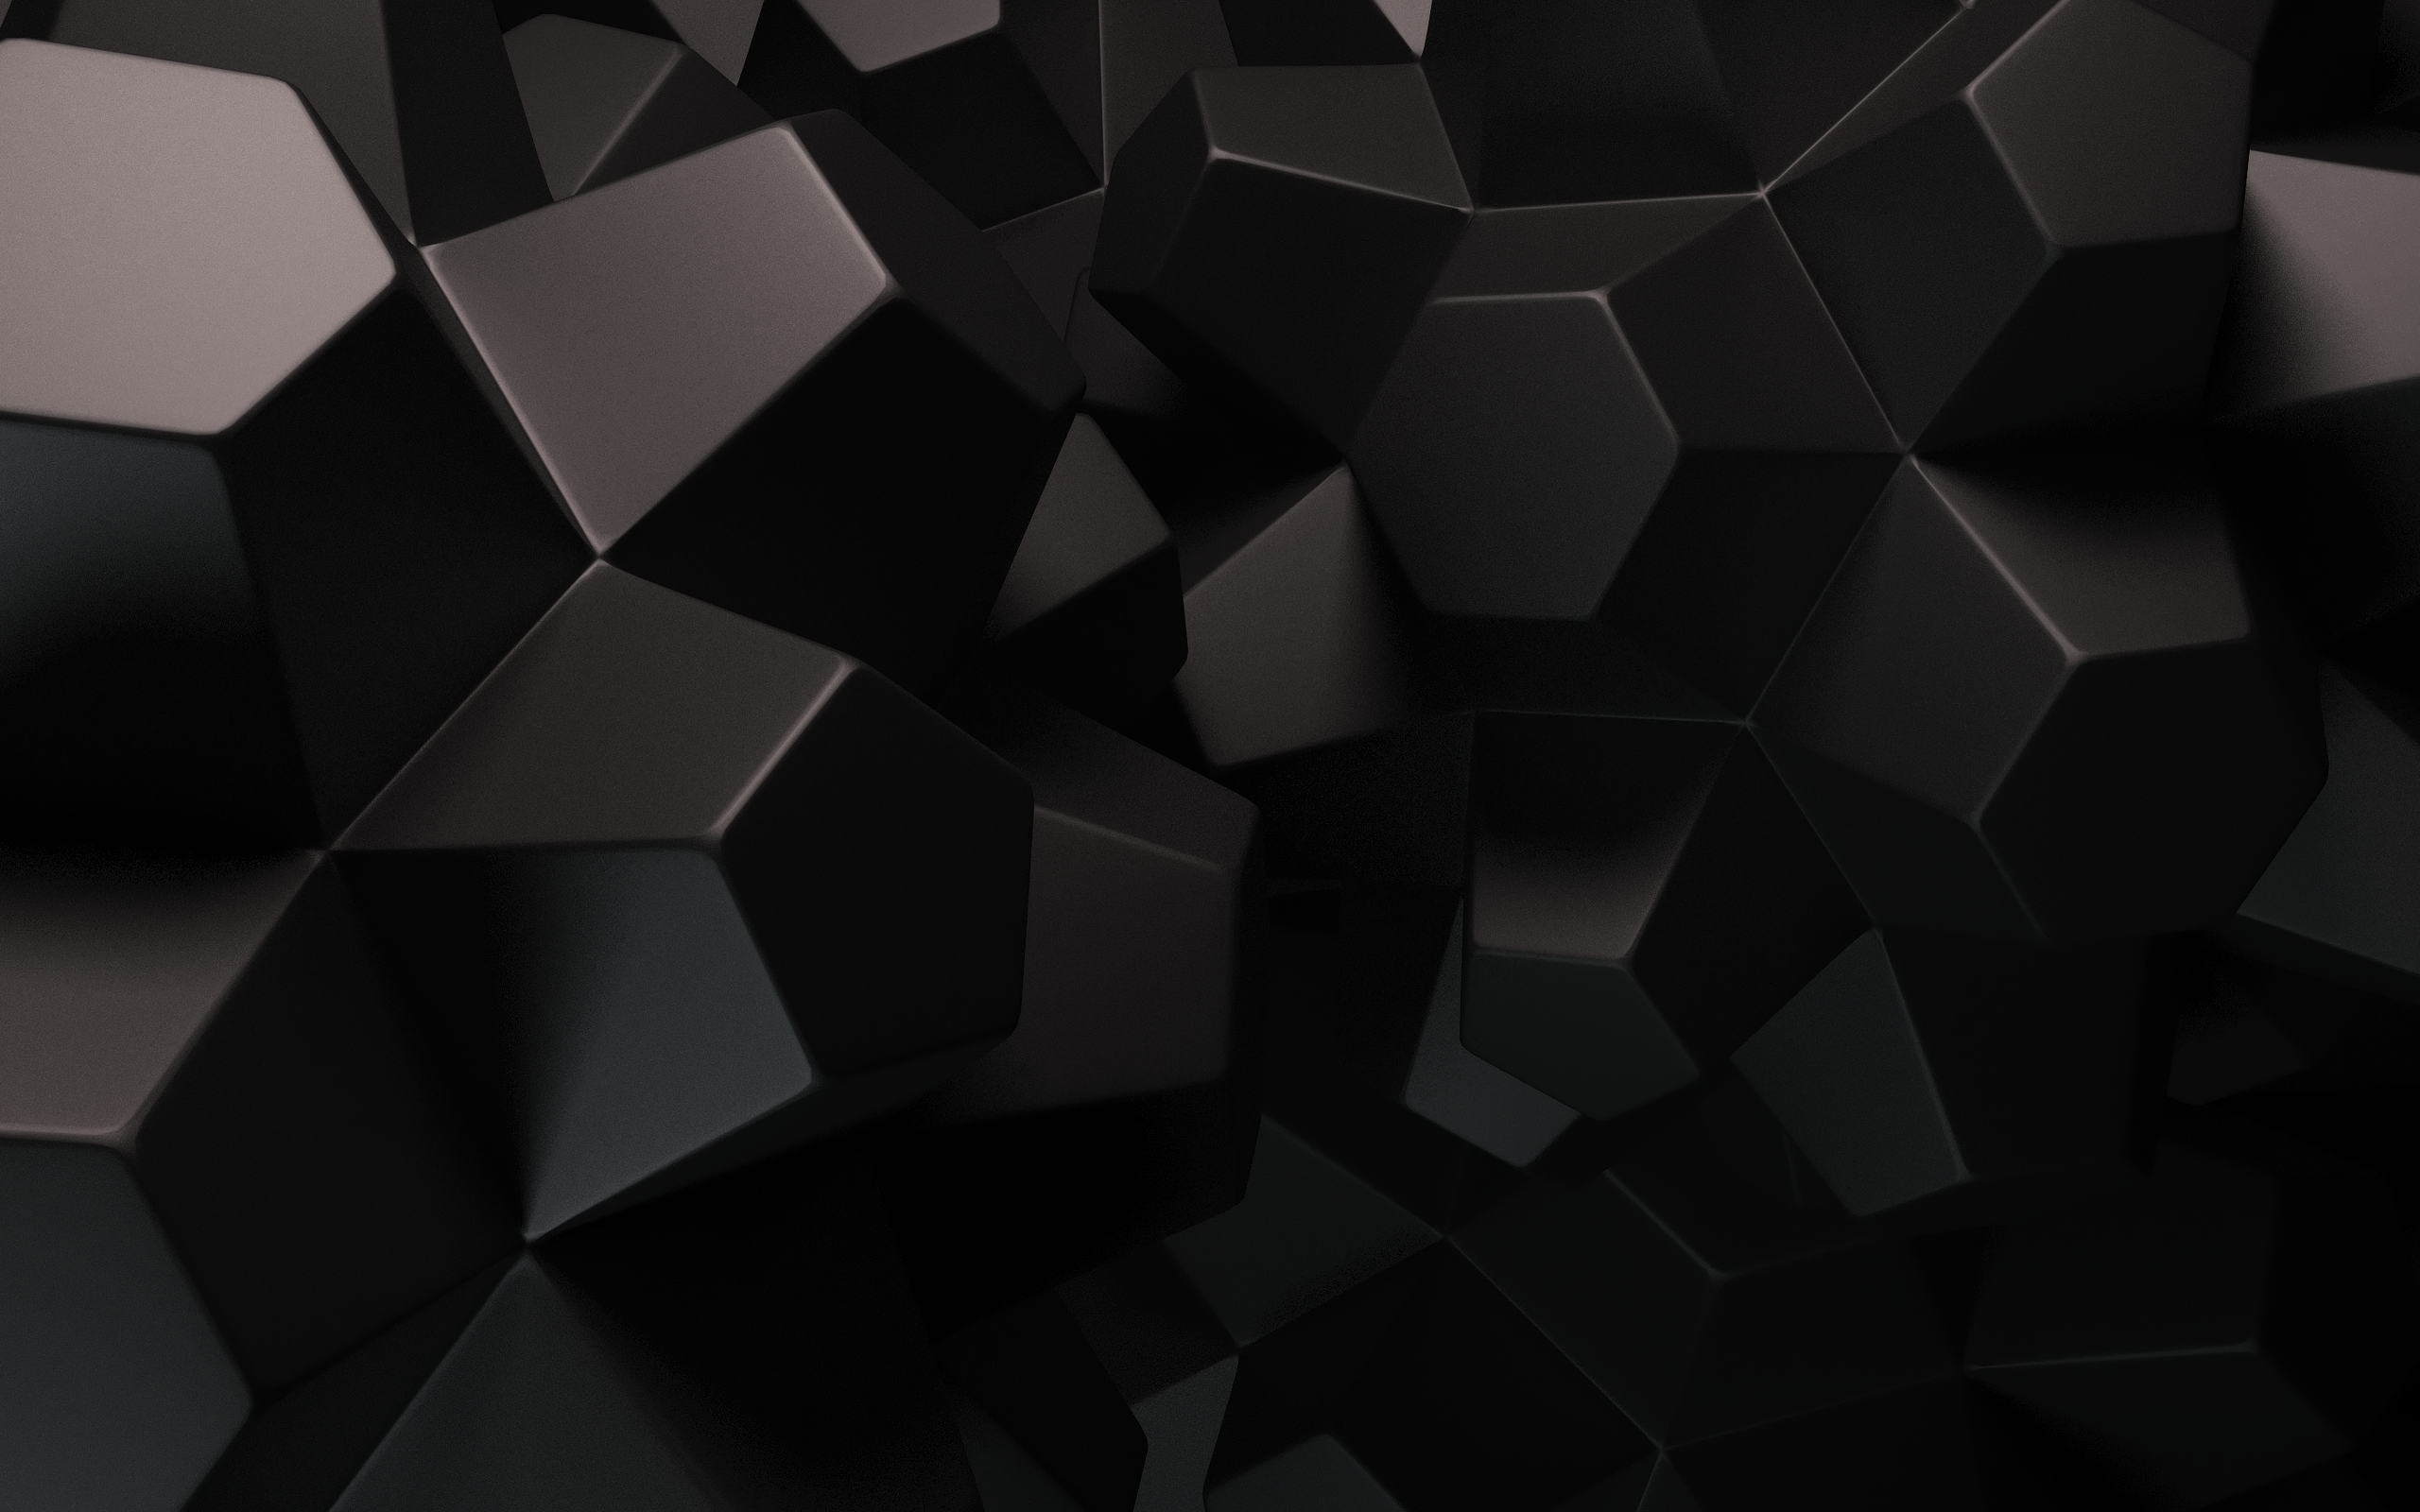 Free Download Funmozar Black Geometric Wallpapers 2560x1600